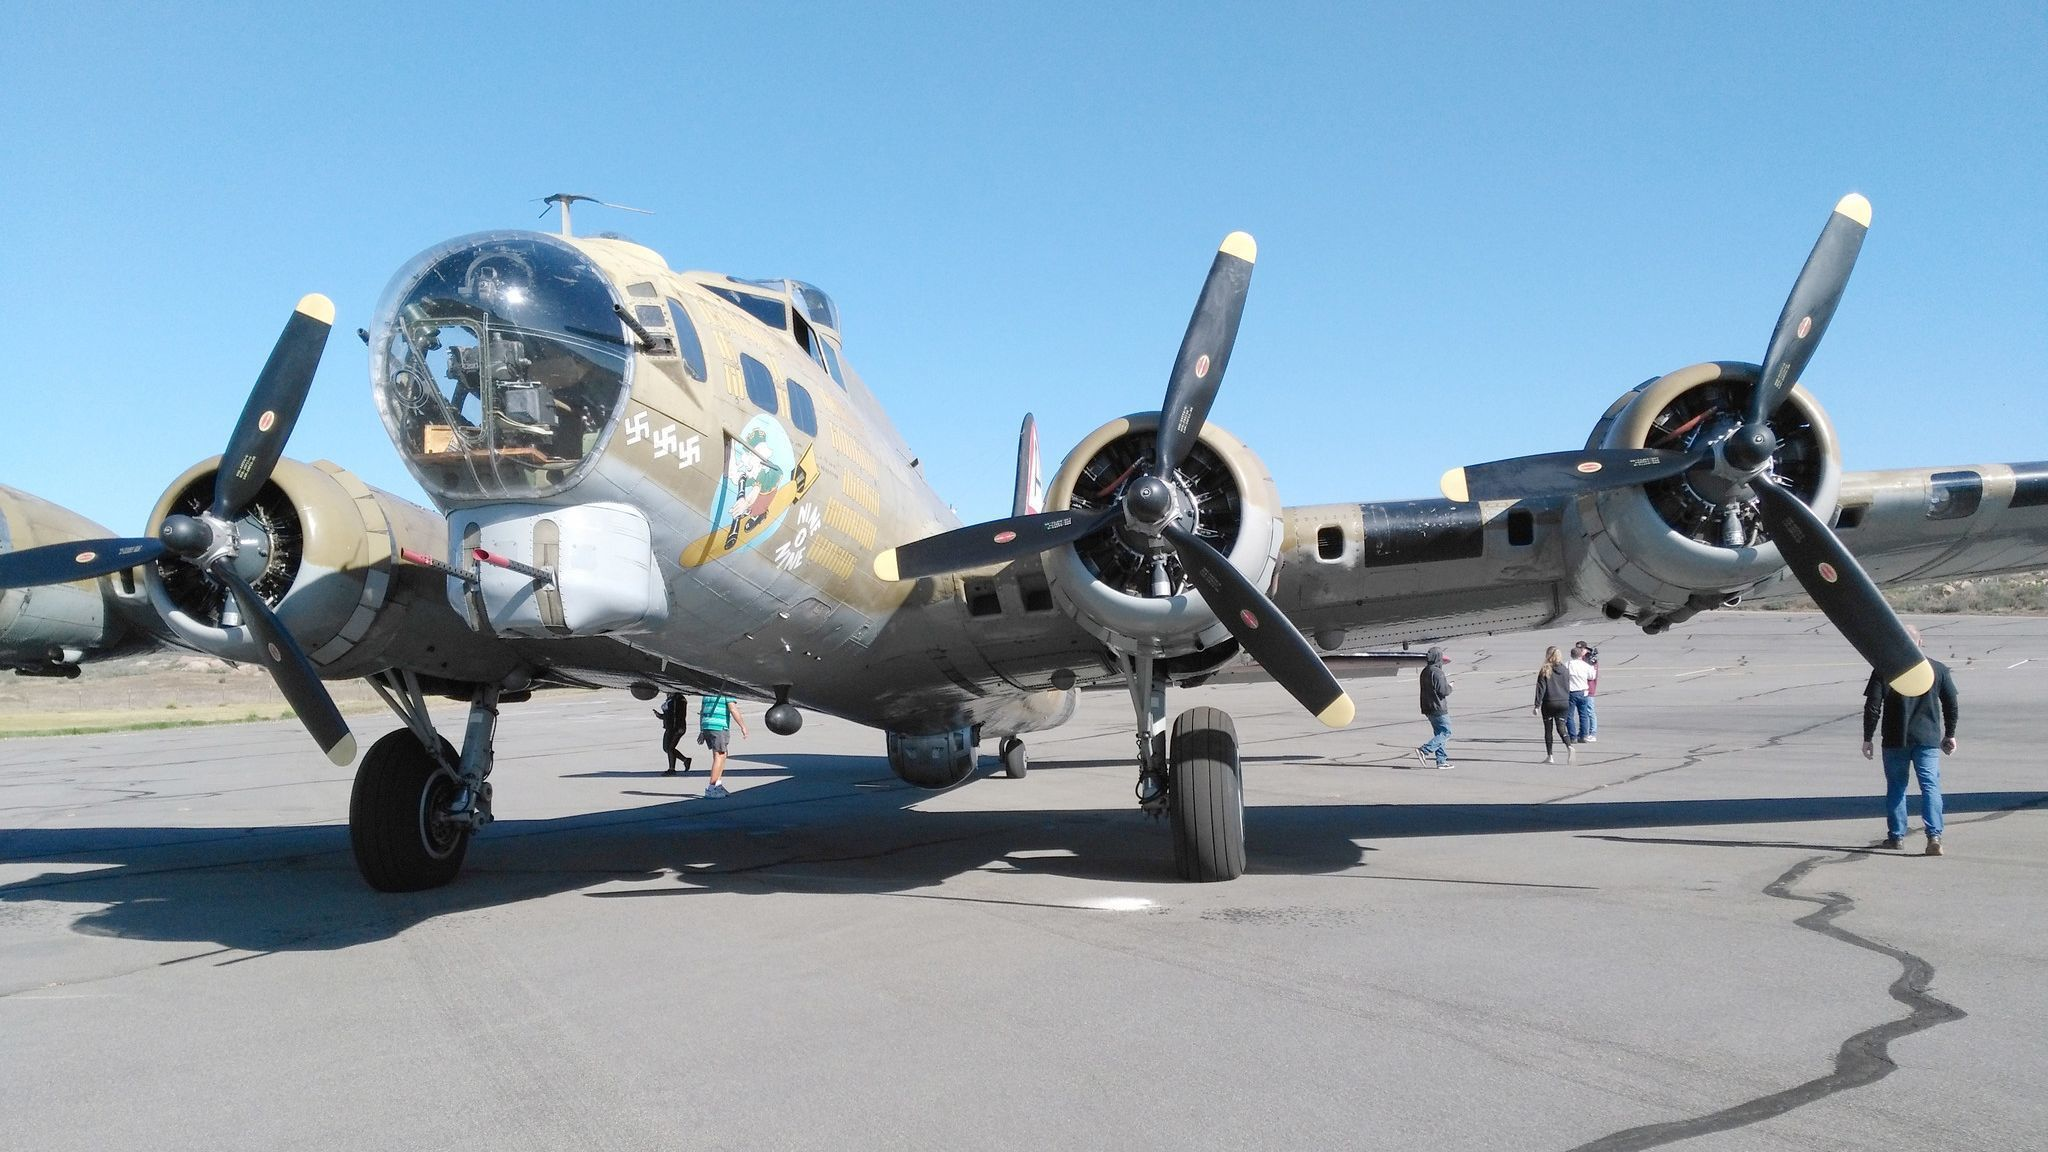 This B-17 Flying Fortress being displayed at Ramona Airport during the Wings of Freedom Tour is considered one of the backbones of the American effort during WWII.